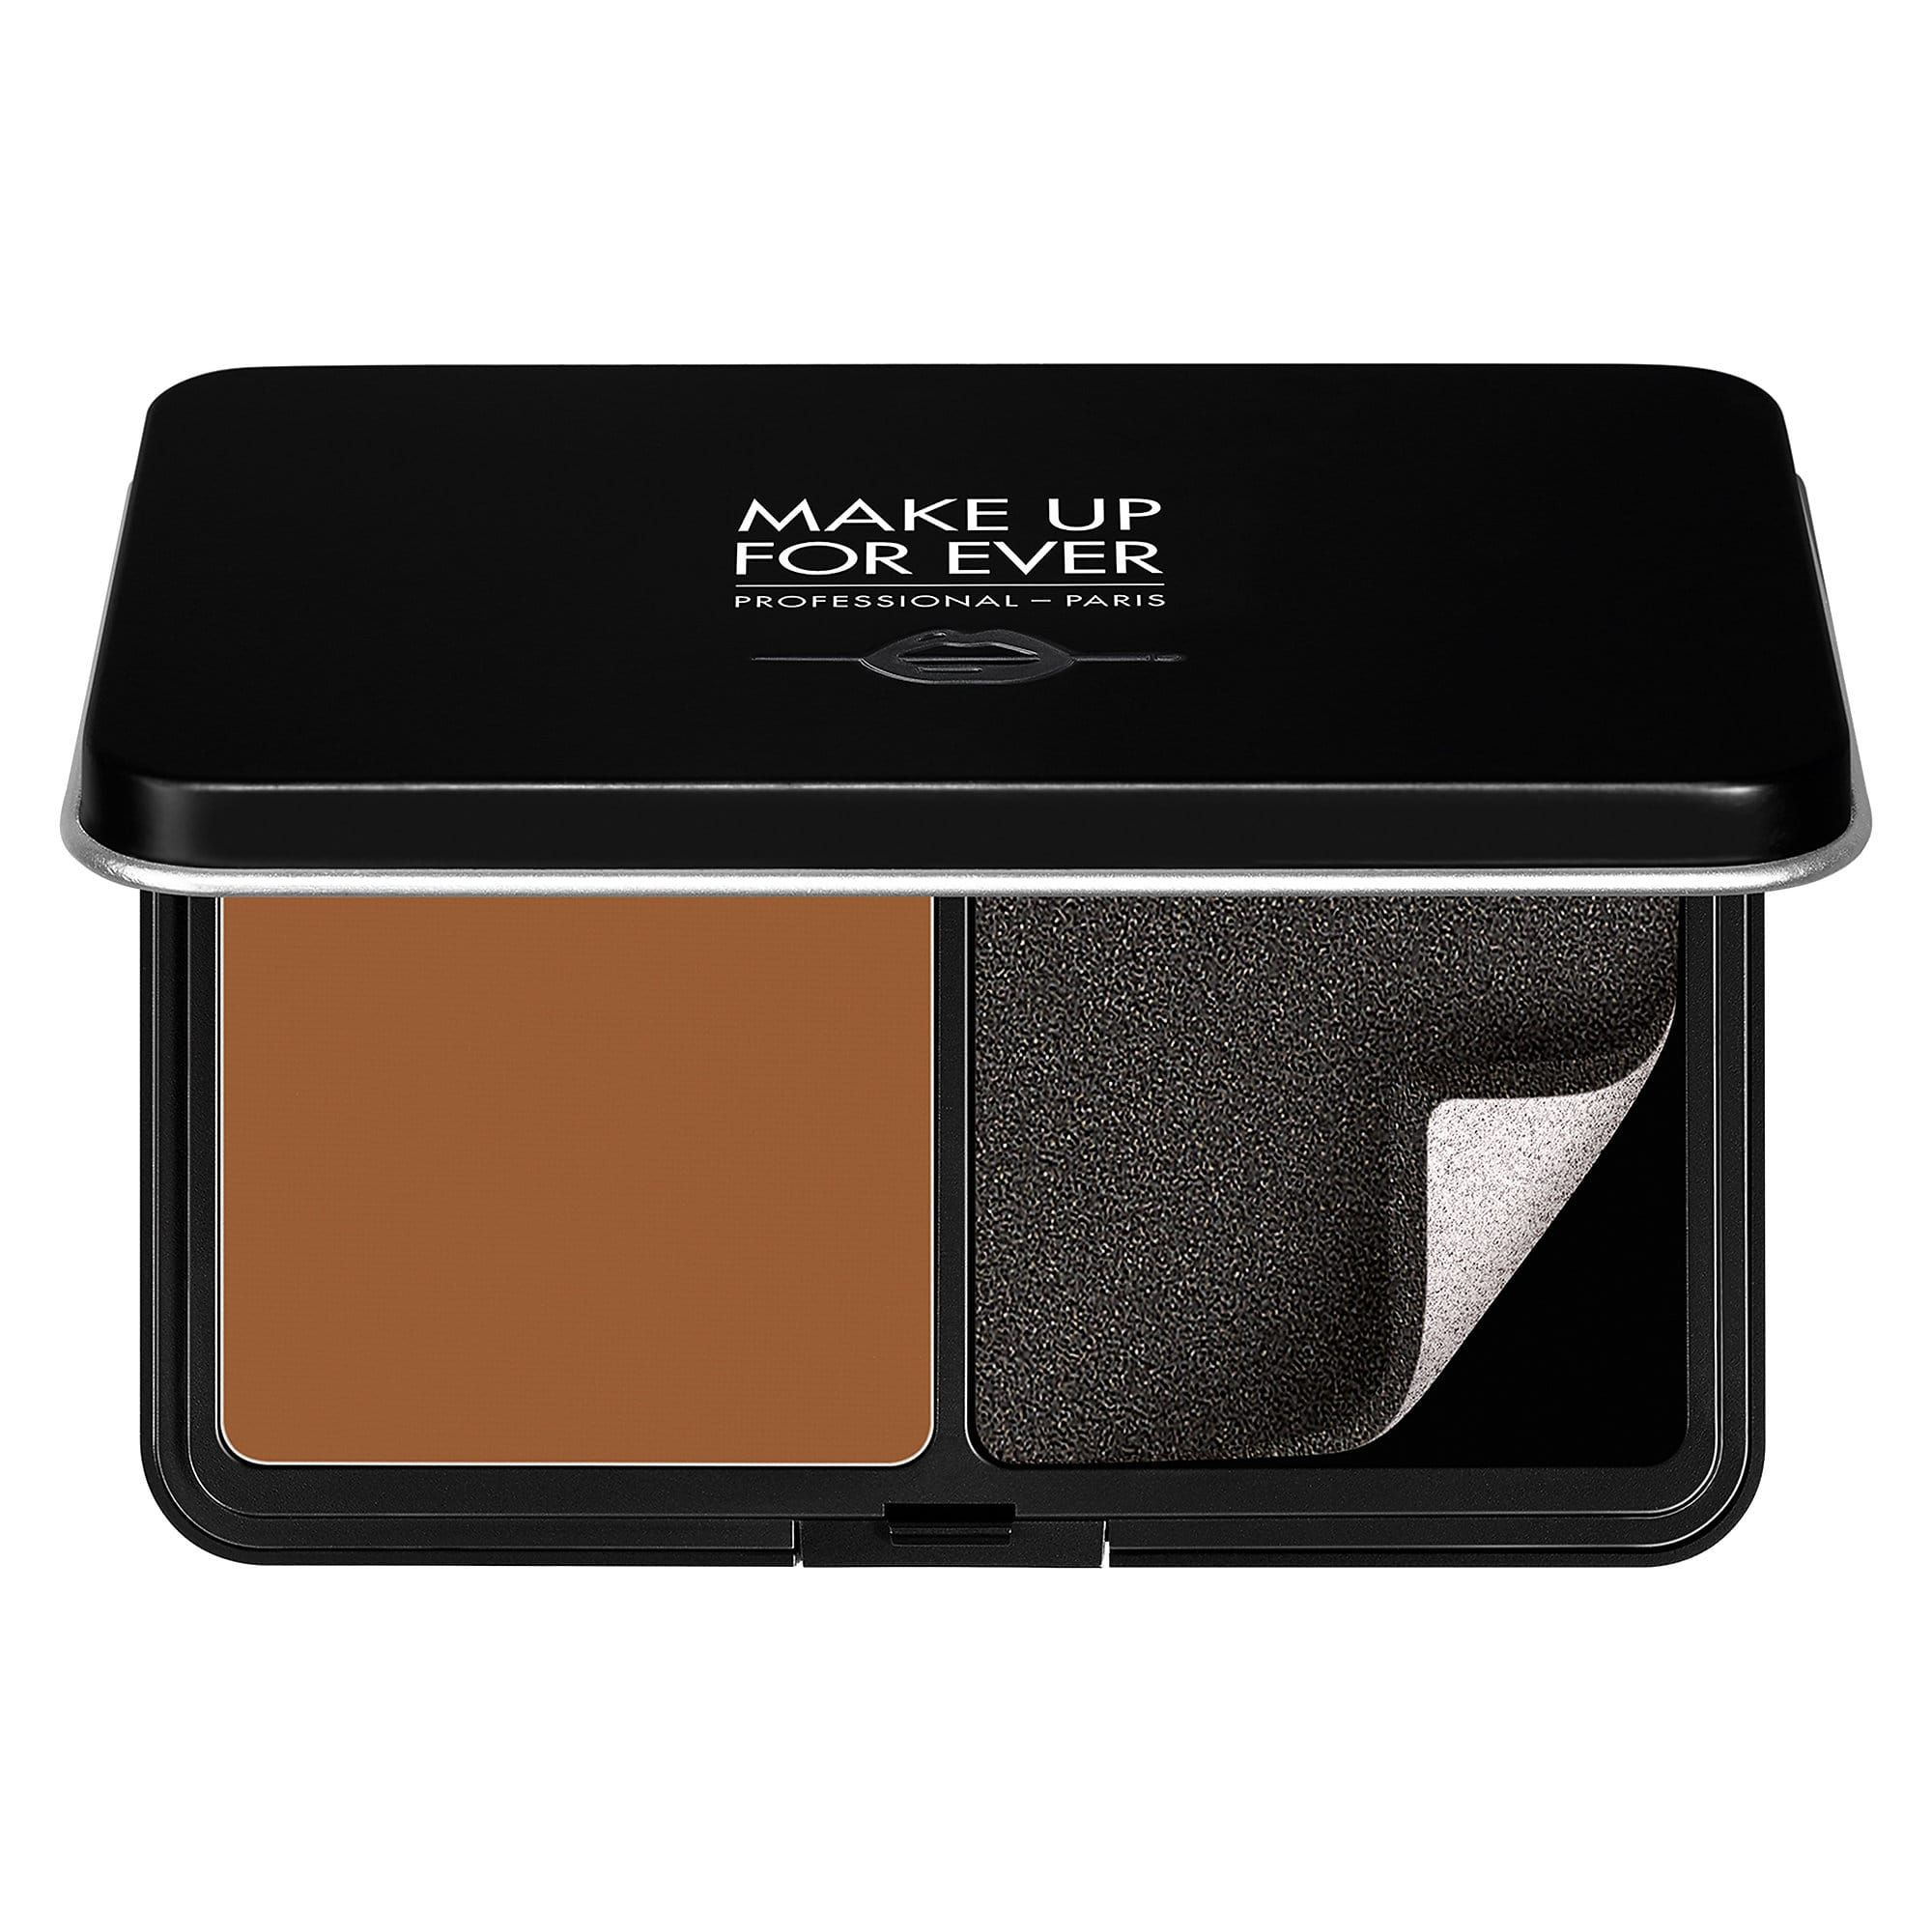 """For Blurring Matte Velvet Skin Blurring Powder Foundation Make Up For Ever sephora.com $38.00 SHOP NOW All skin types can use this powder foundation, which lasts for 12 hours and has that coveted """"blurring"""" effect which makes pores disappear."""